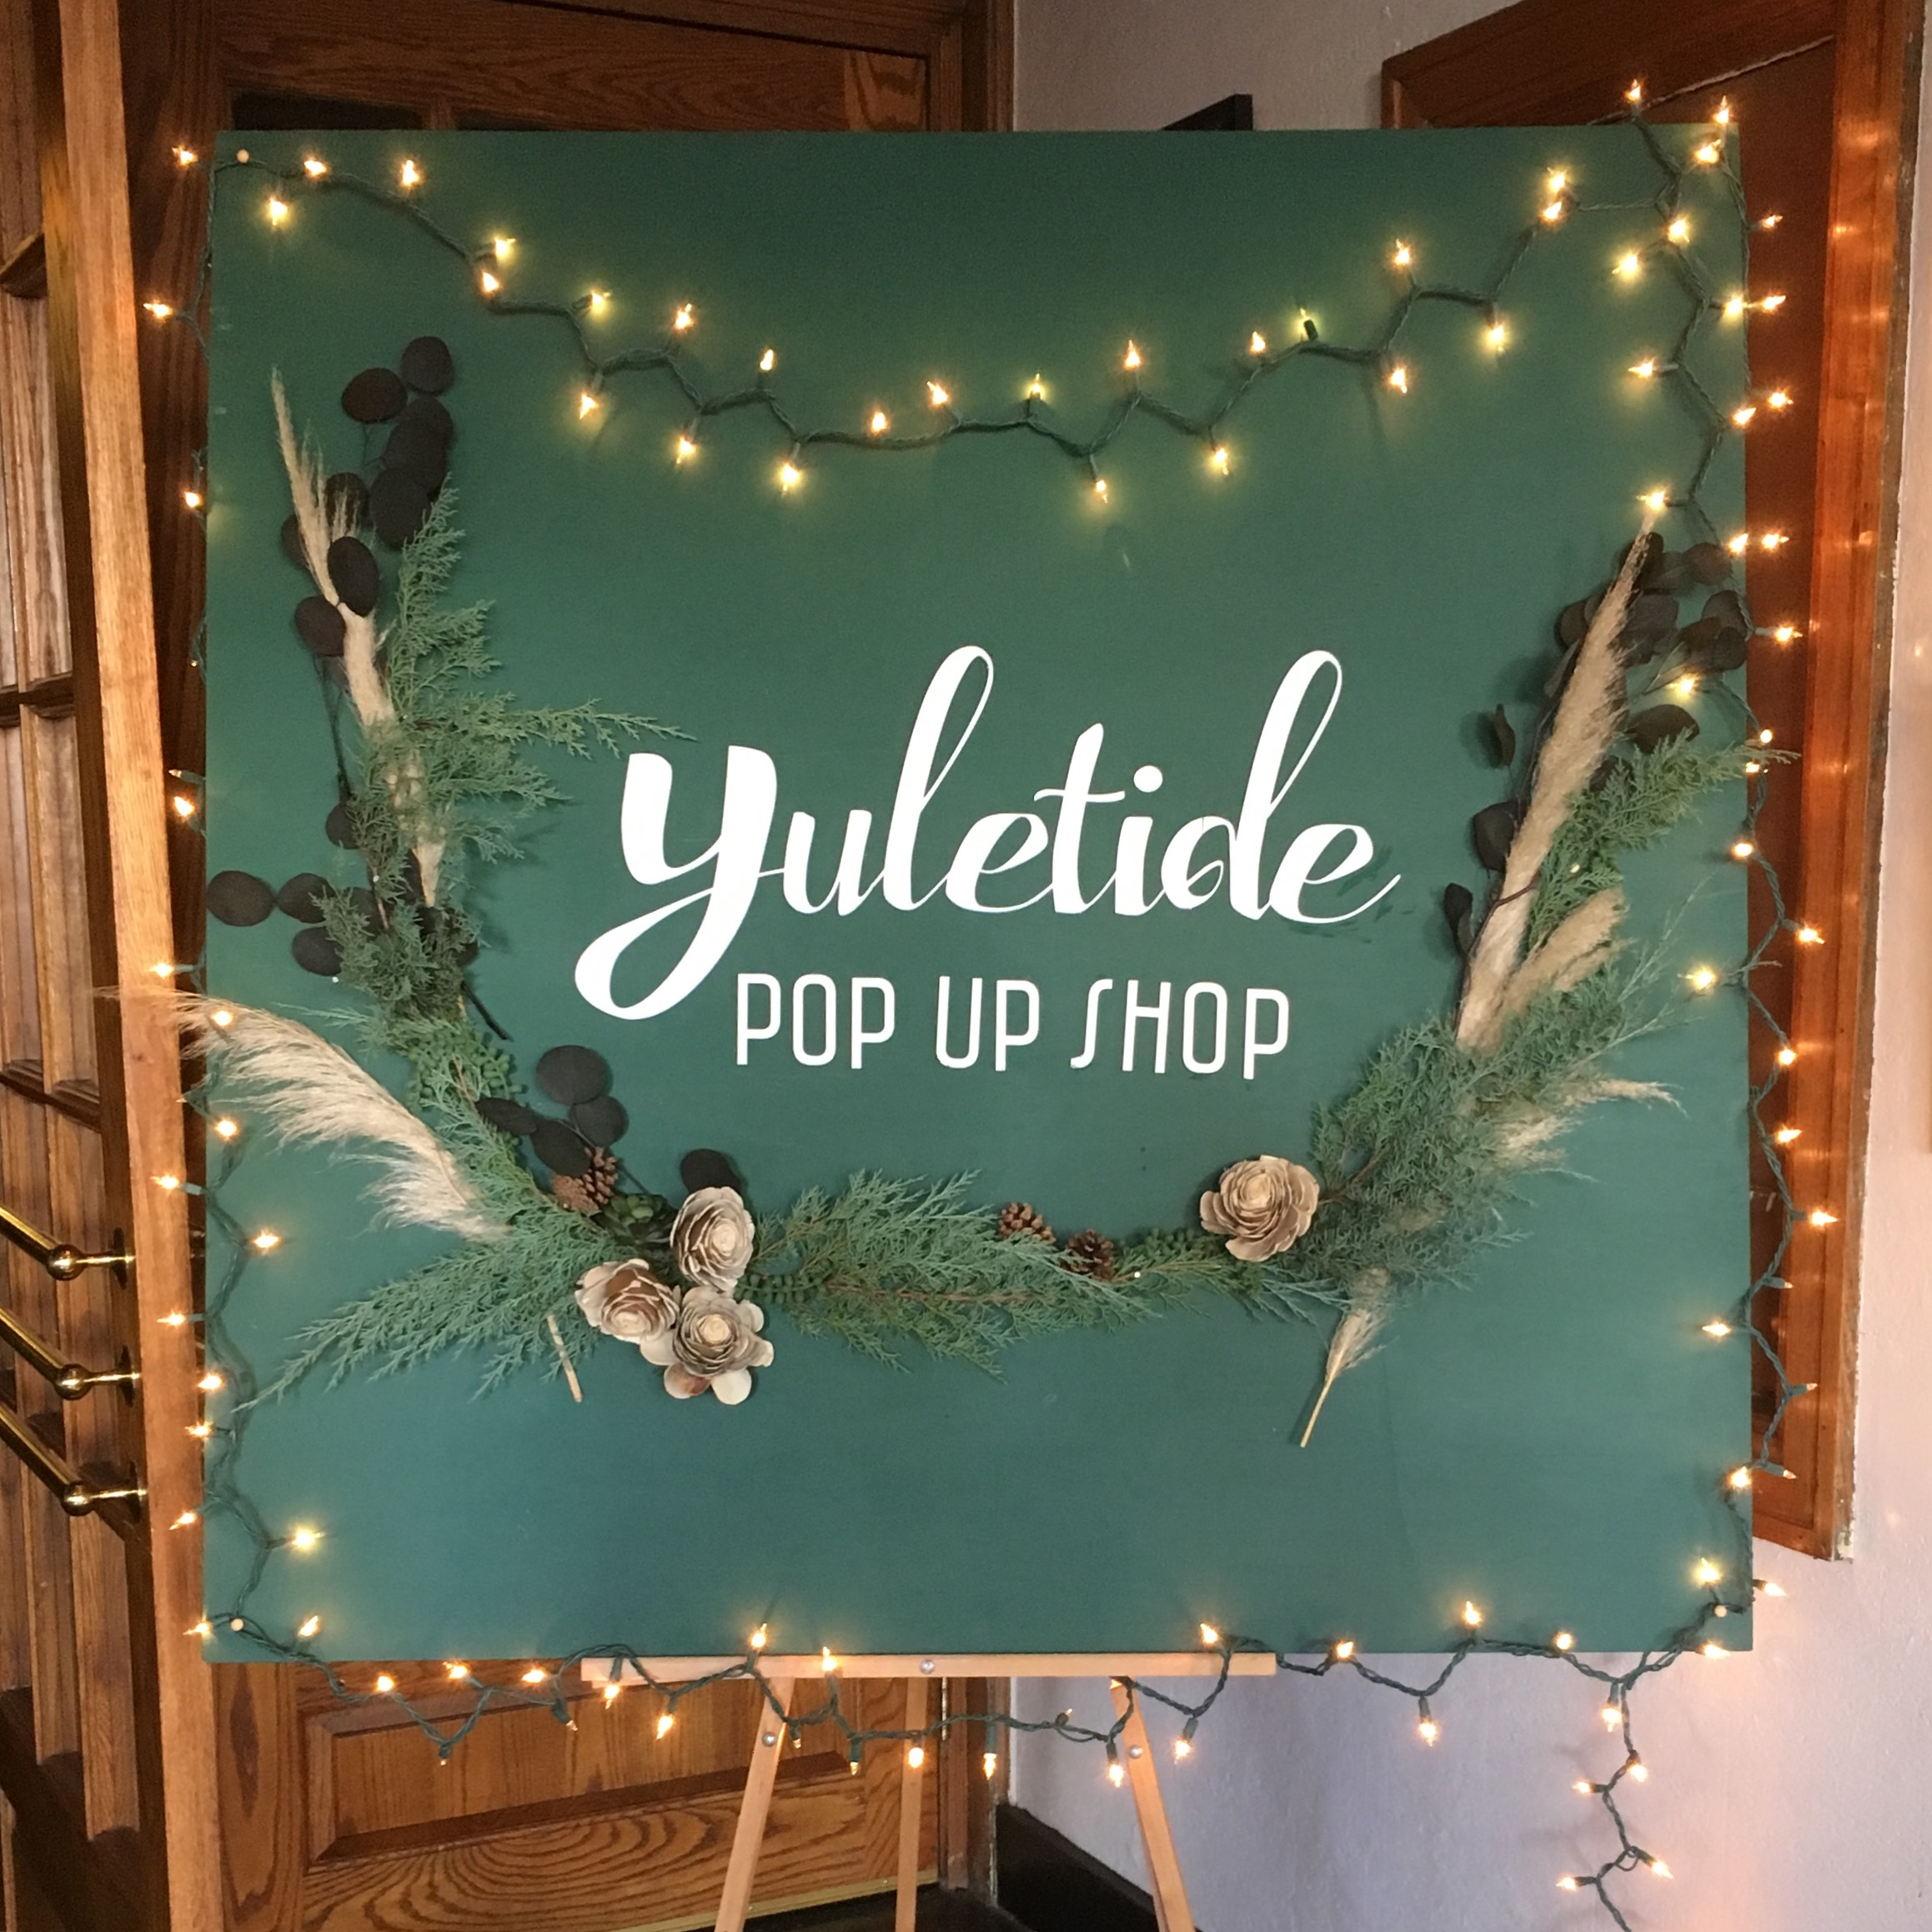 We had so much fun at the Yuletide Pop Up Shop held at The New Southern Hotel today! How perfect is Lisa Garner's beautiful hand made sign!? Lisa's hand dyed selection of personal accessories are to dye for! Thank you so much to the team at Yuletide for making our community a destination this weekend! Going on November 26th and 27th!